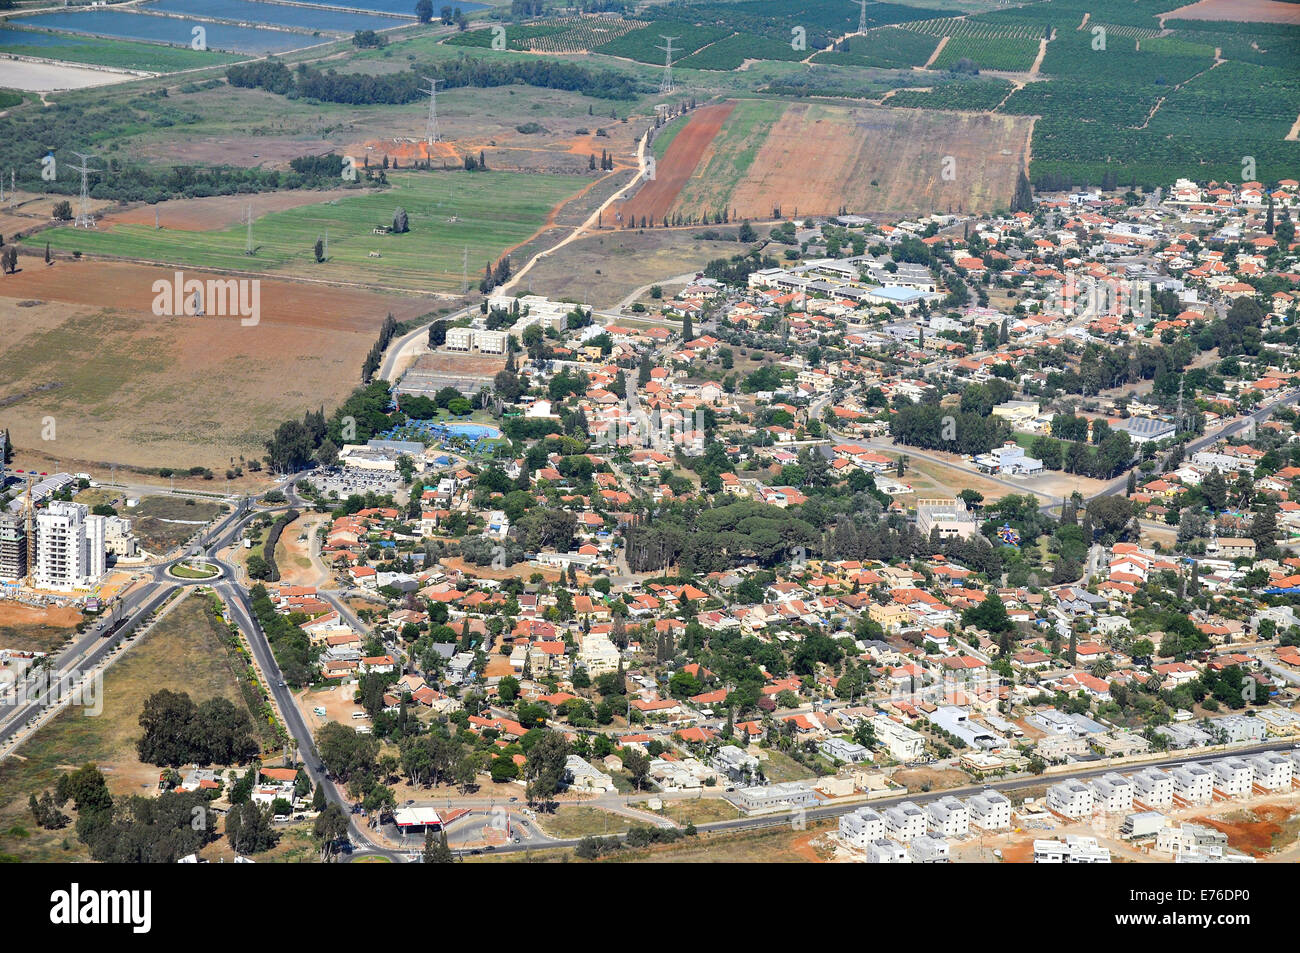 Rural aerial photography. Photographed in Israel - Stock Image